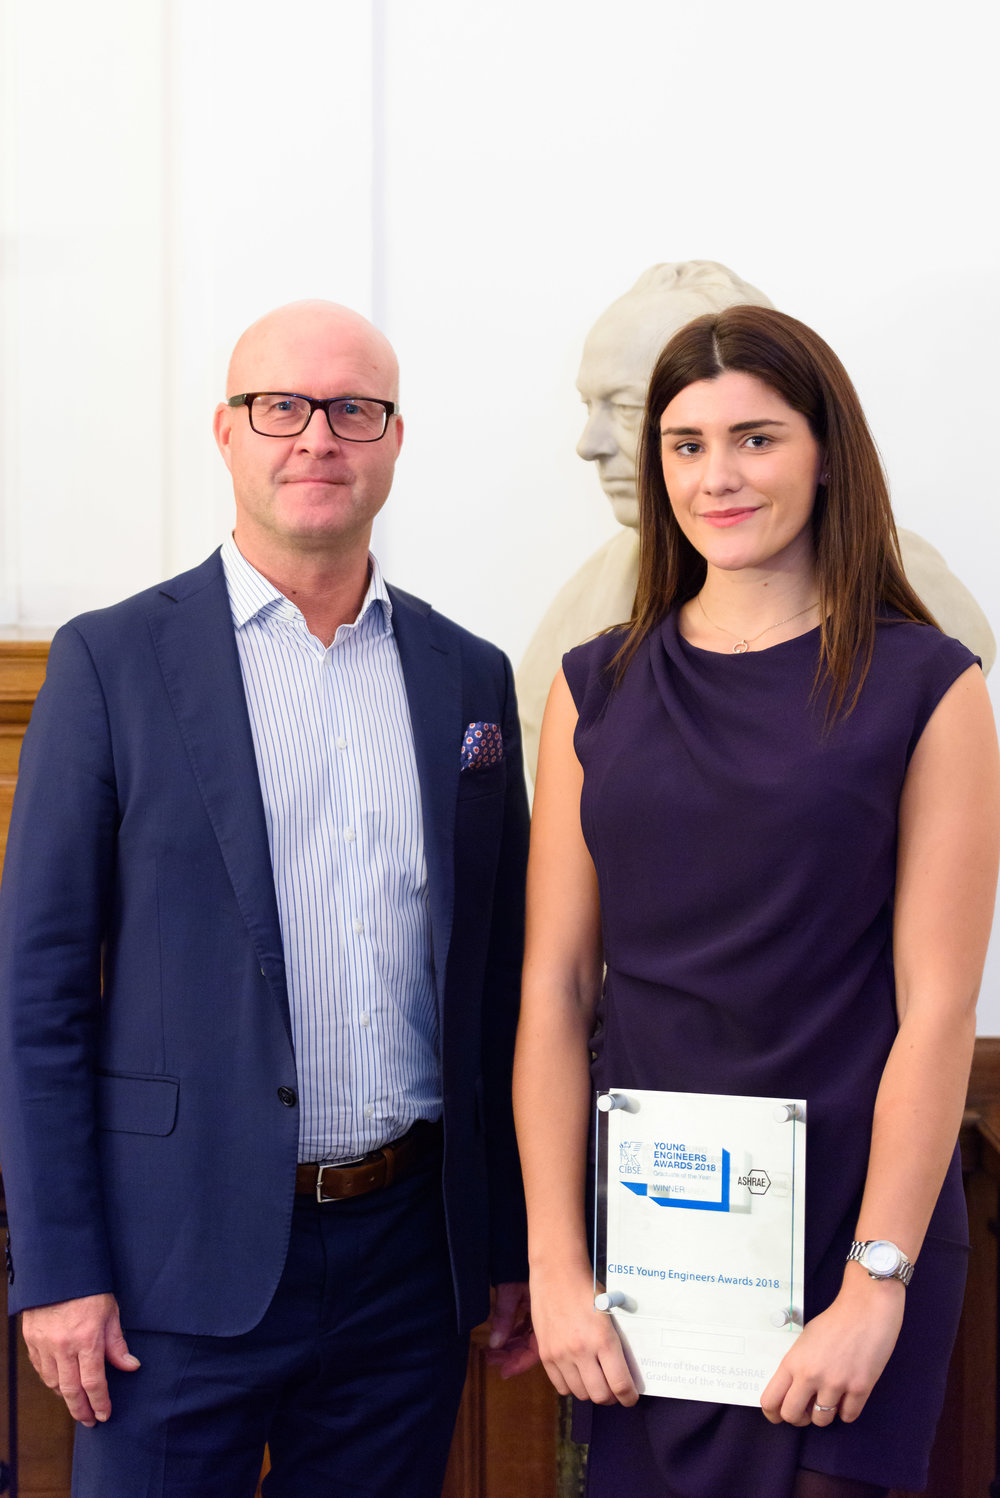 Swegon UK&I Managing Director,, Robin Vollert, with 2018 Graduate of the Year, Reanna Evans, at the Institution of Mechanical Engineers.